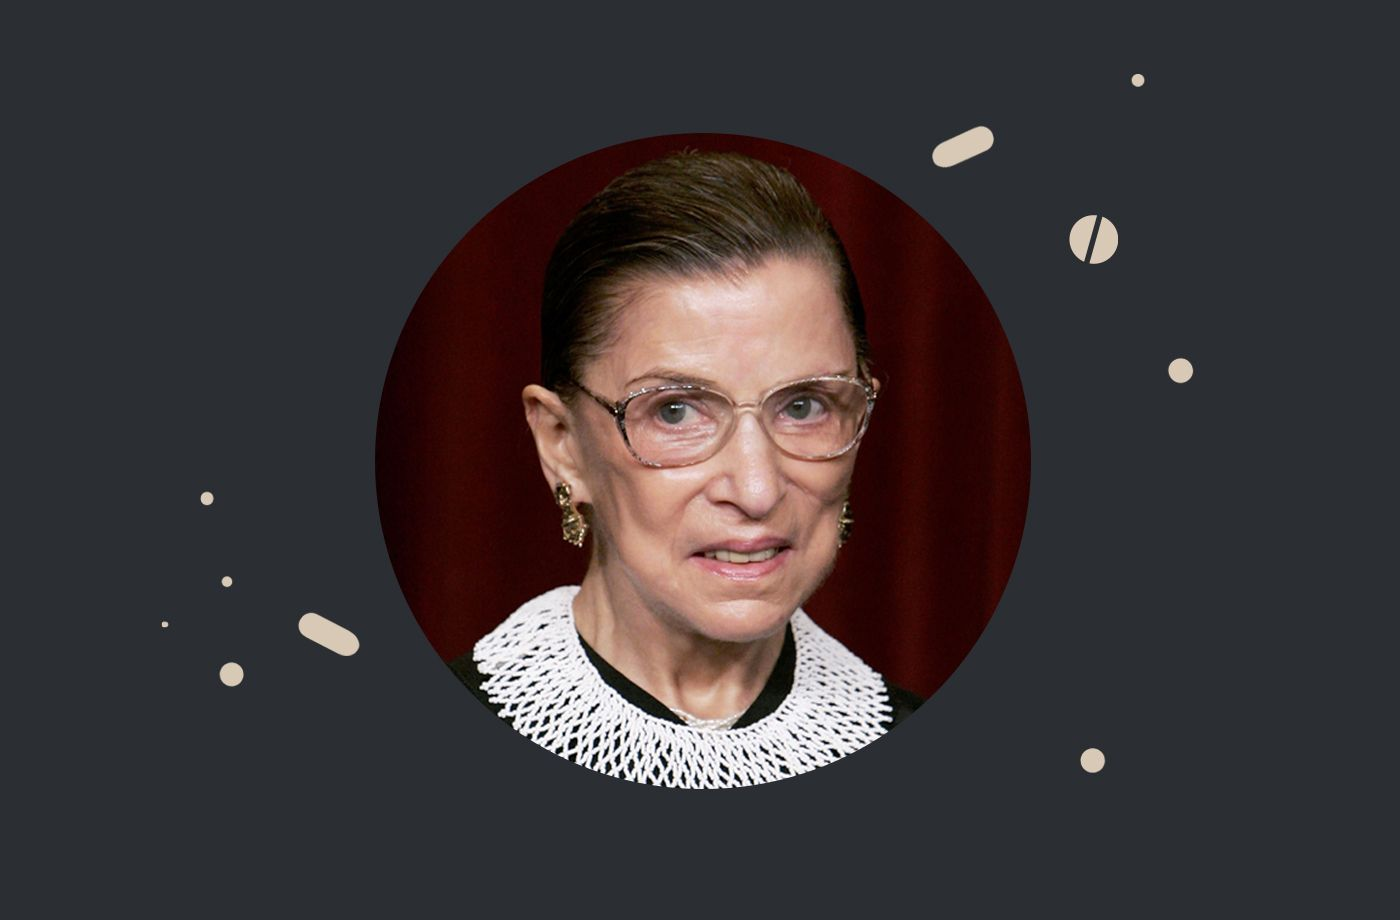 Thumbnail for Ruth Bader Ginsburg's Death Sparked a Scramble for Contraception—Here's How Her Legacy Impacts Future Access